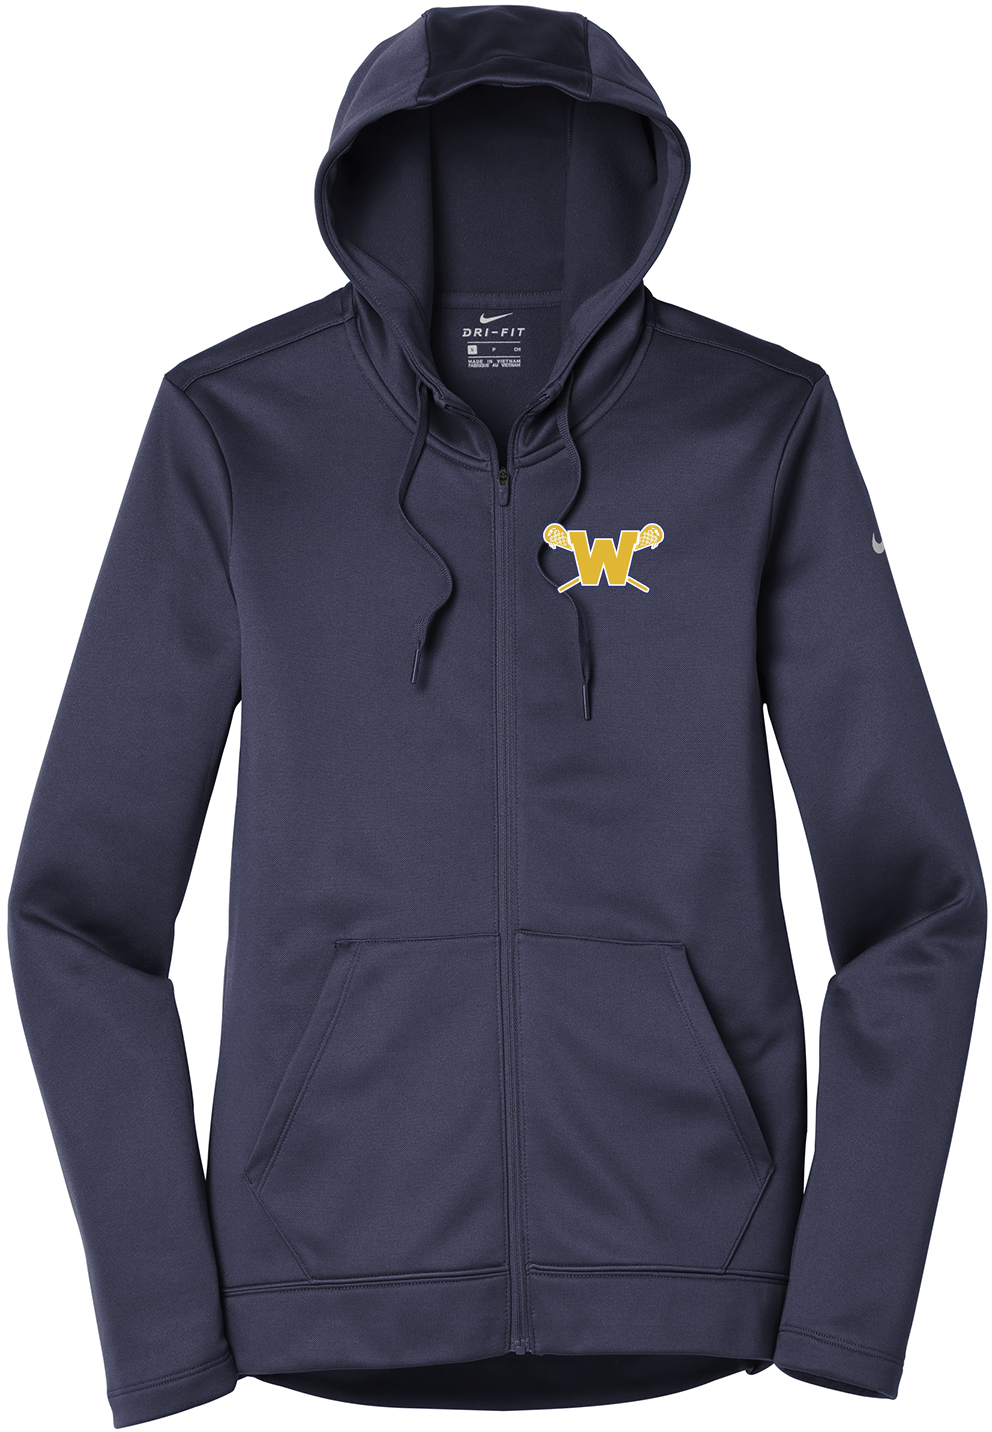 Webster Lacrosse Navy Nike Ladies Therma-FIT Full Zip Hoodie